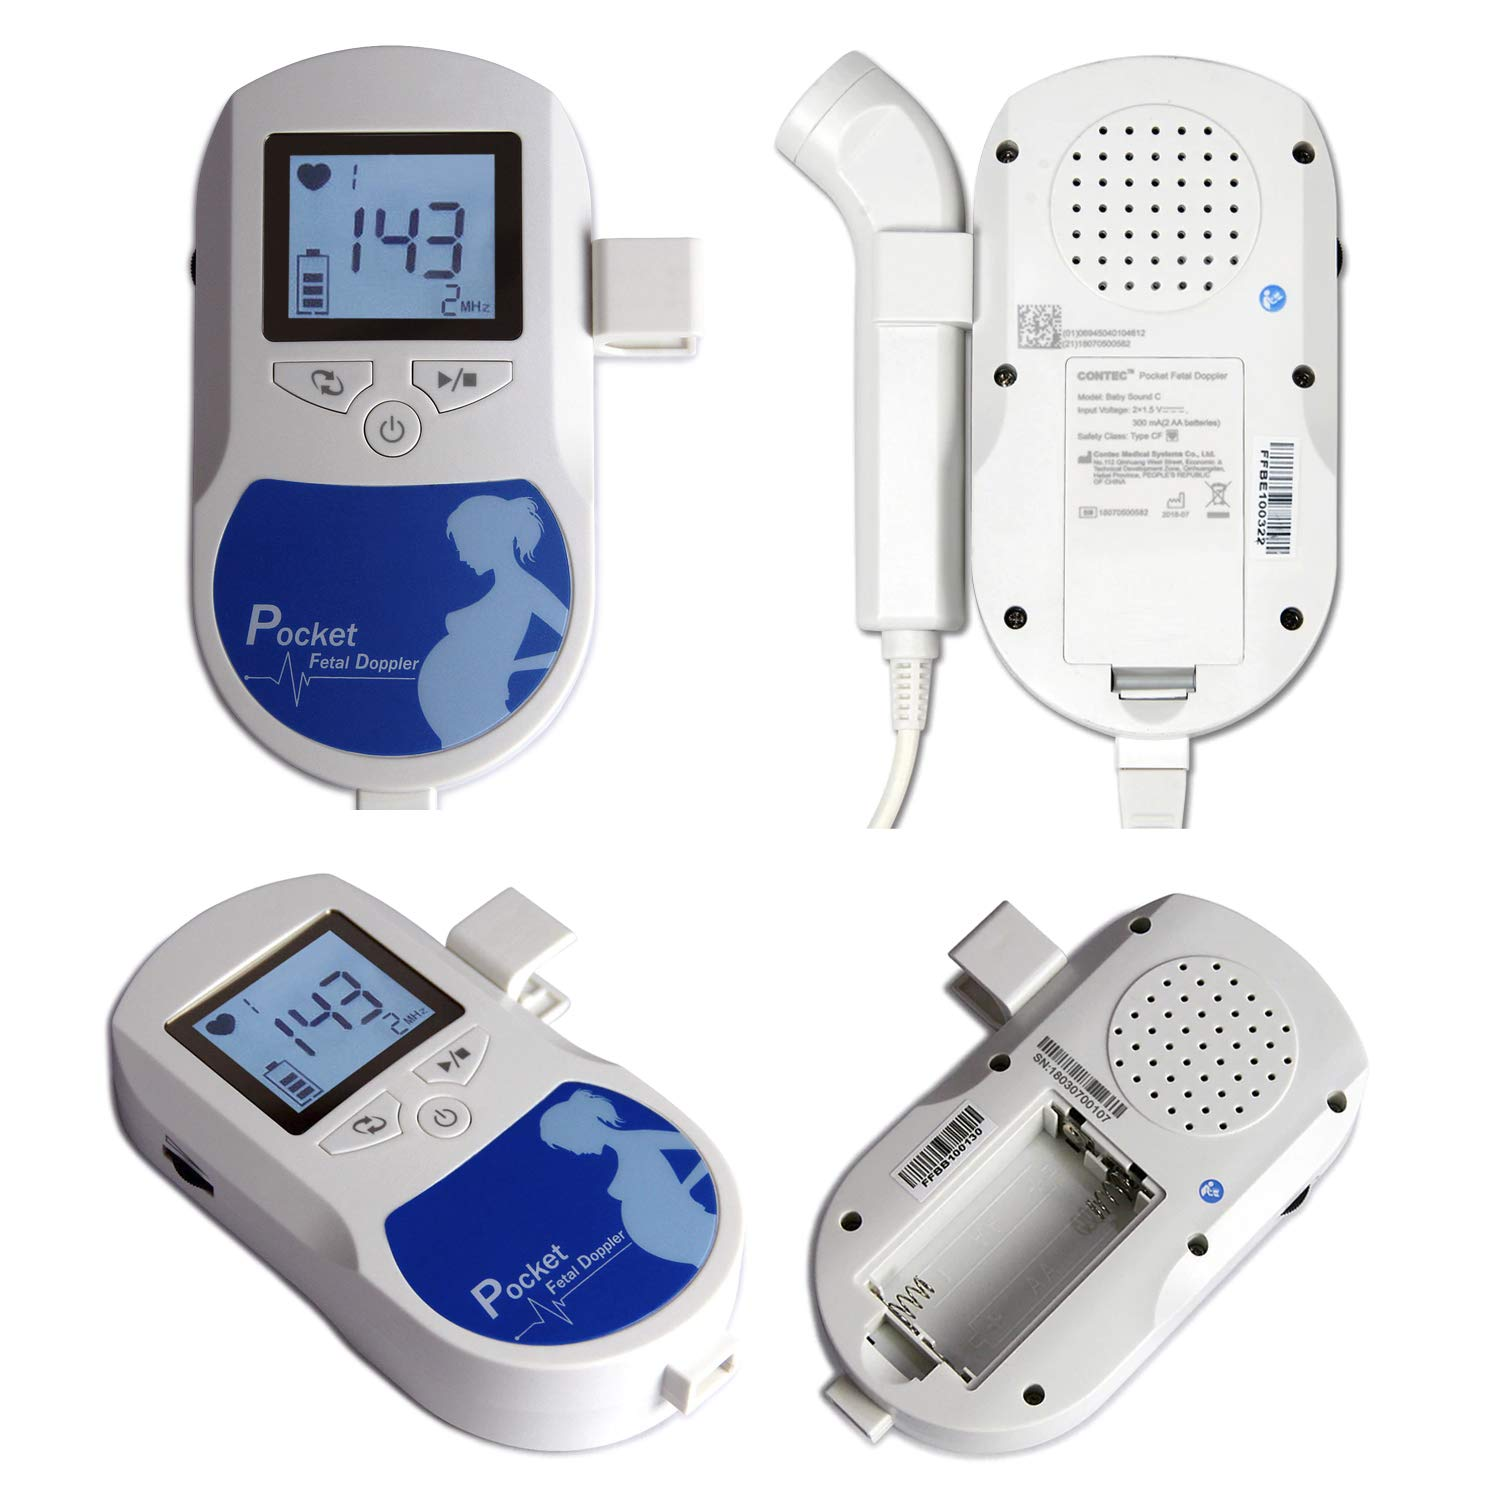 3 MHz Pocket Size Baby Echo Device - Comes with Crooked Probe and Batteries - The Perfect Reliable Gadget for Your Baby by Happy Toes (Image #3)